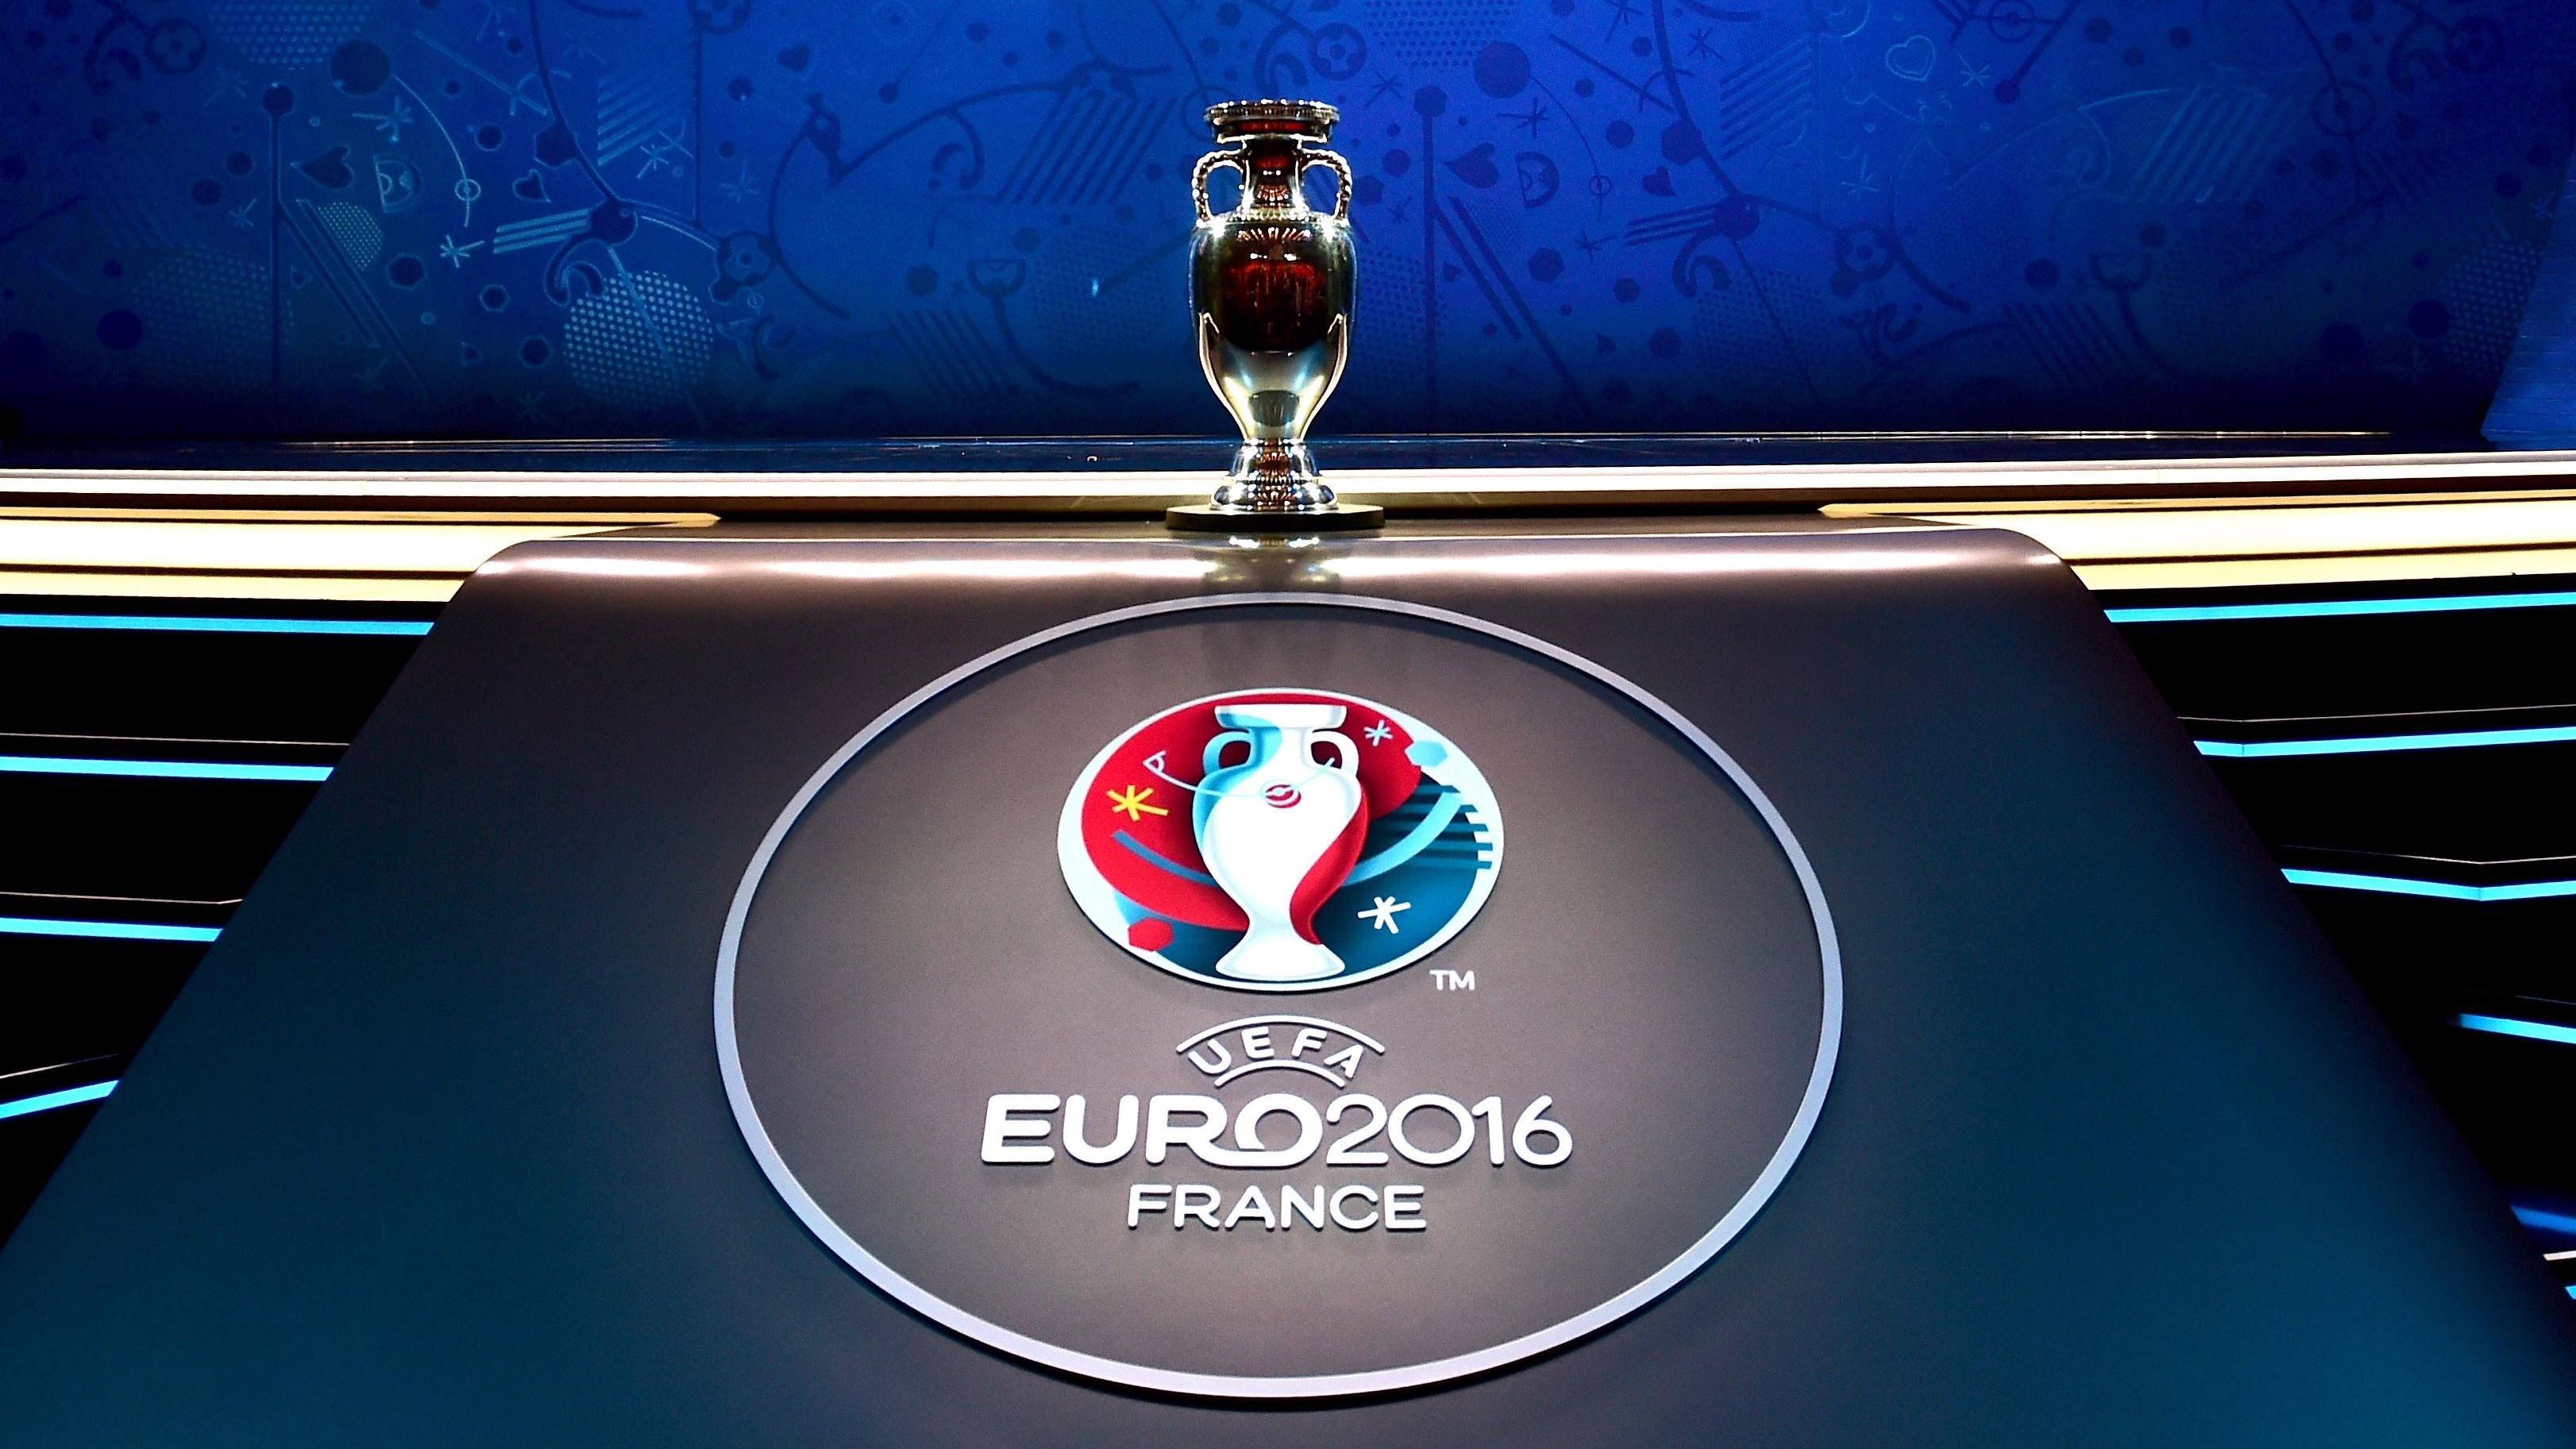 uefa euro 2016 fond d 39 cran hd arri re plan 3244x1825 id 691160 wallpaper abyss. Black Bedroom Furniture Sets. Home Design Ideas